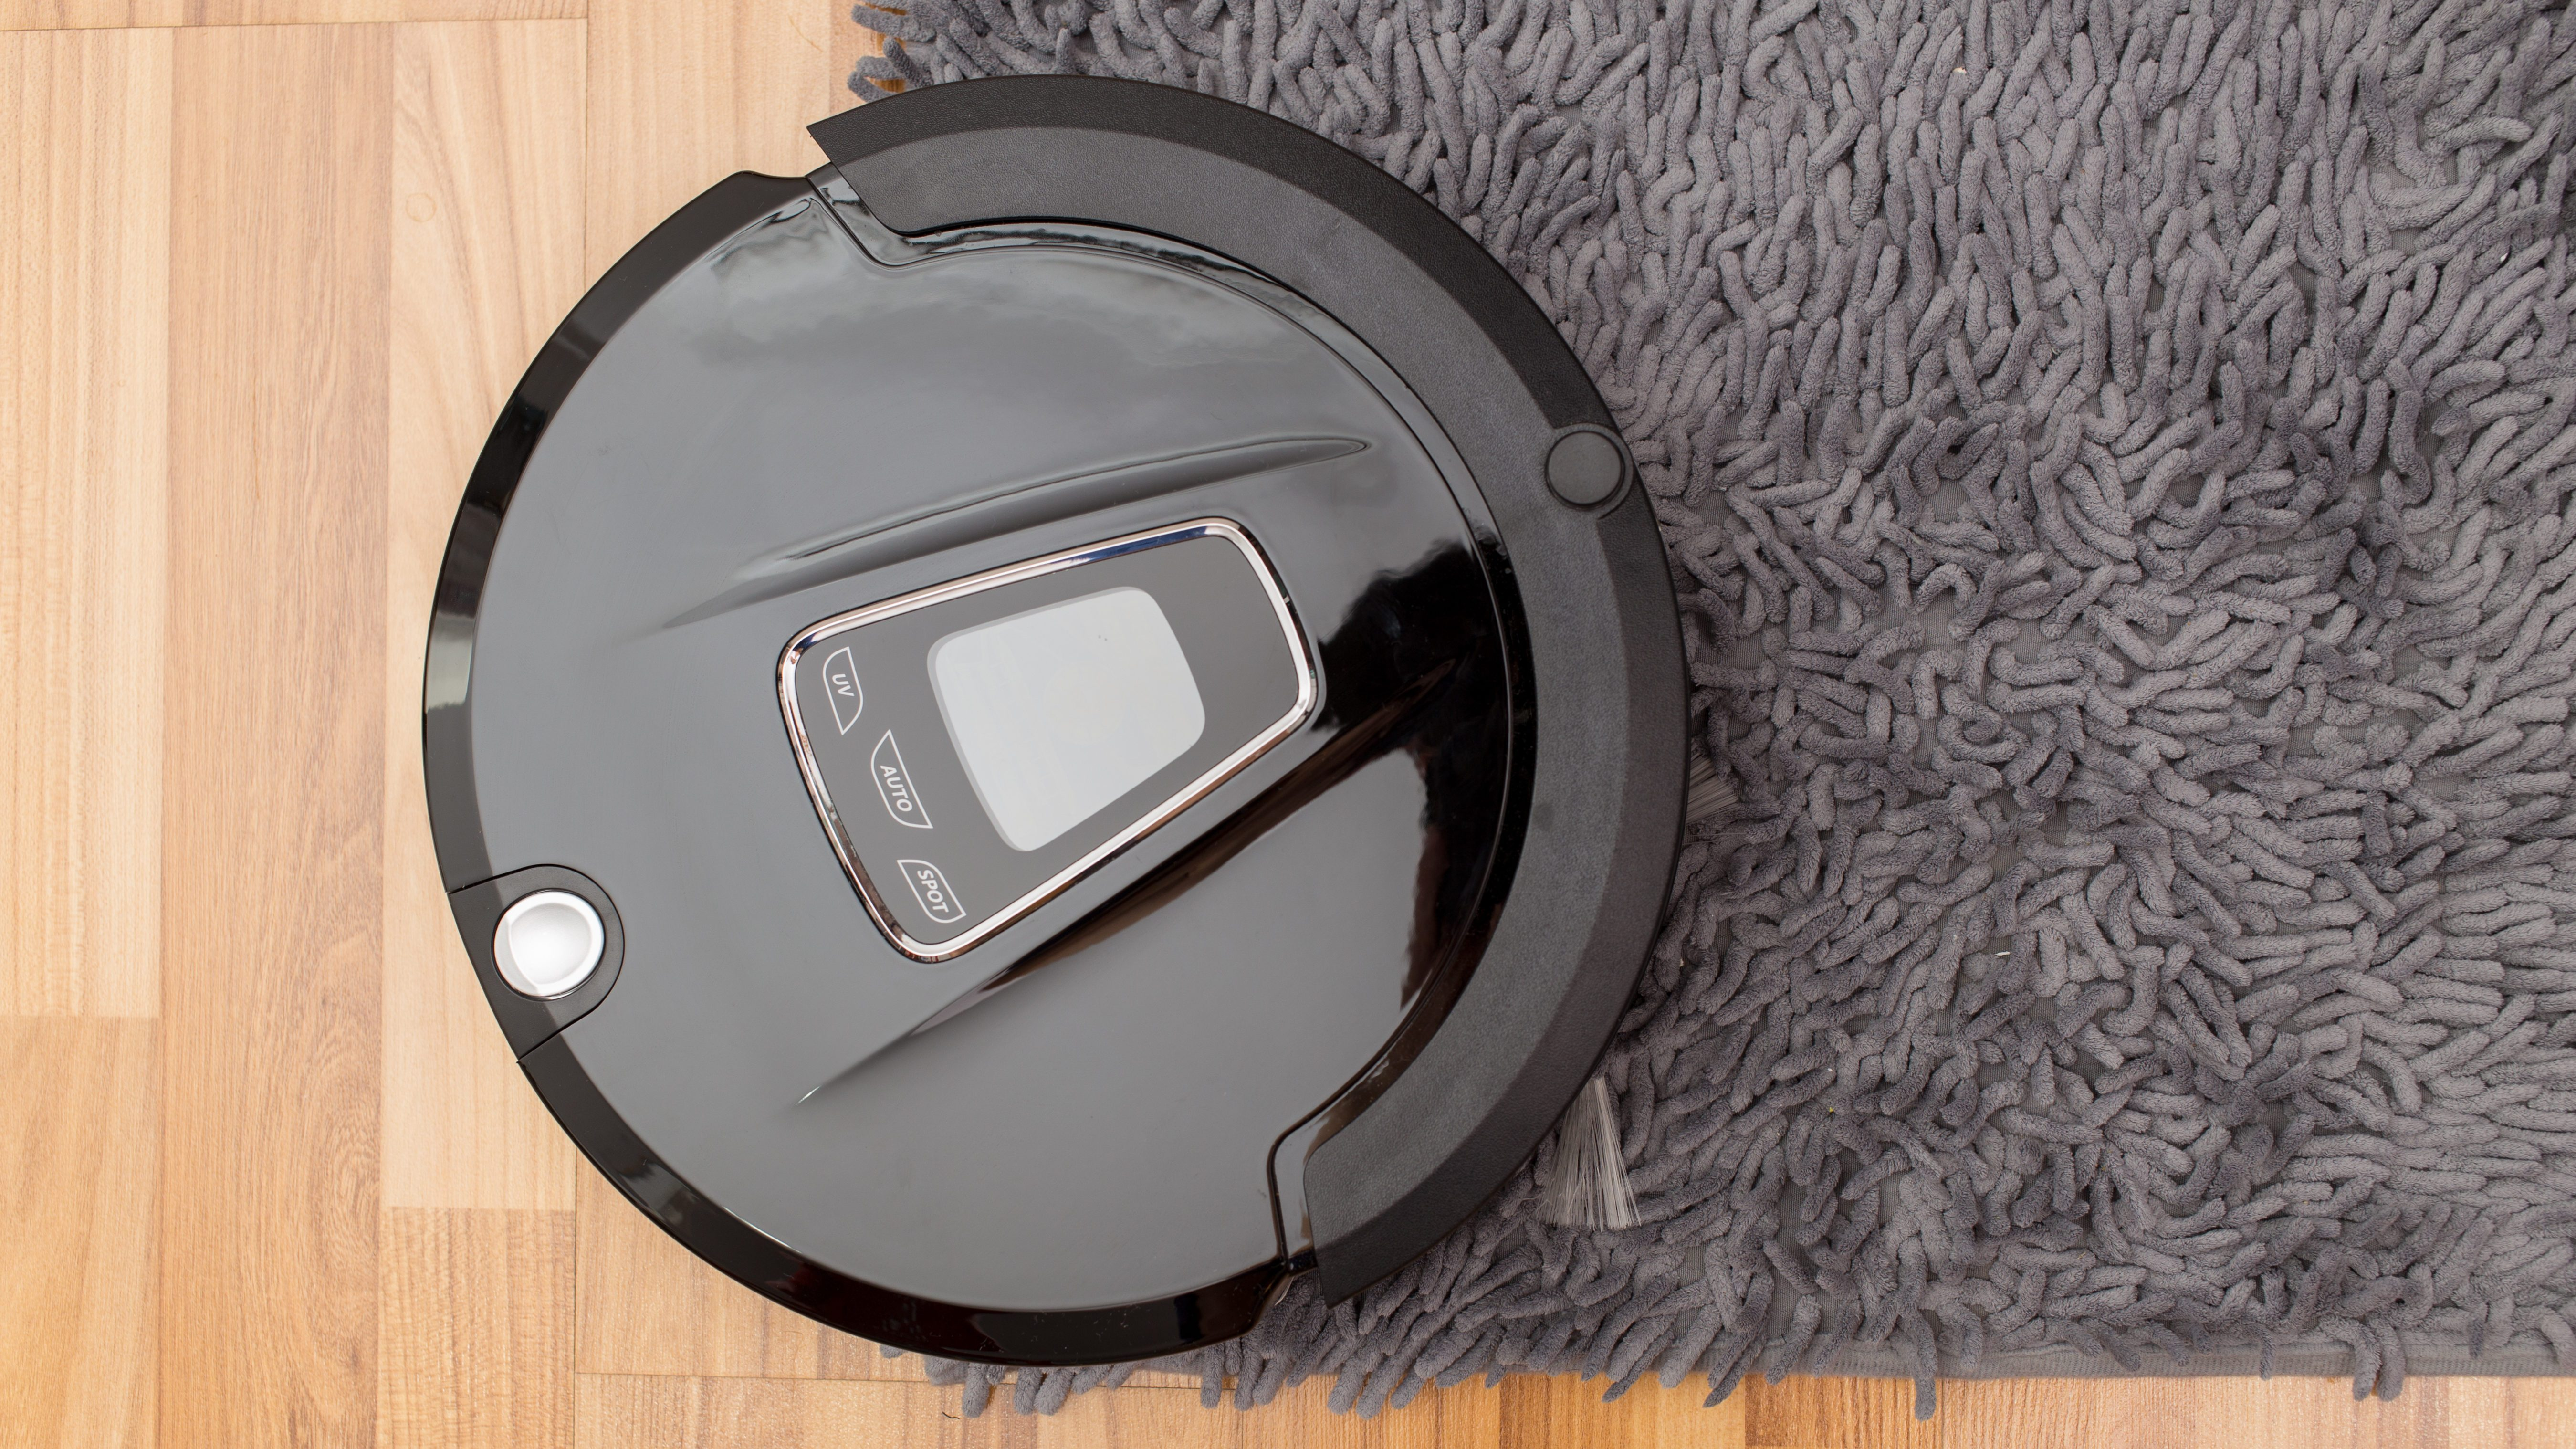 Robot vacuum cleaner on laminate wood floor, Smart robotic automate wireless cleaning technology machine in living room.